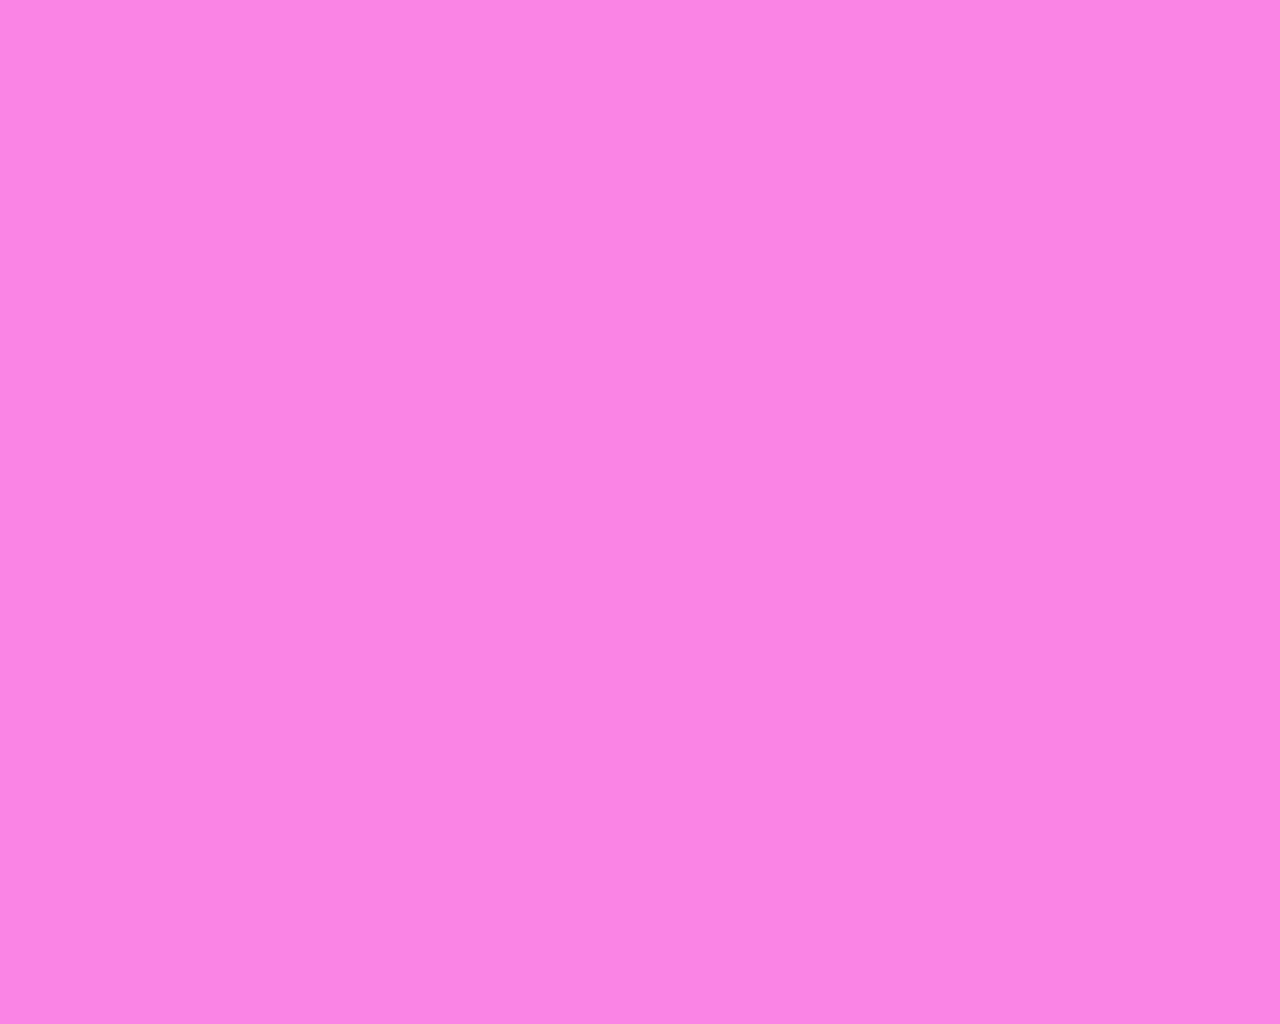 1280x1024 Pale Magenta Solid Color Background